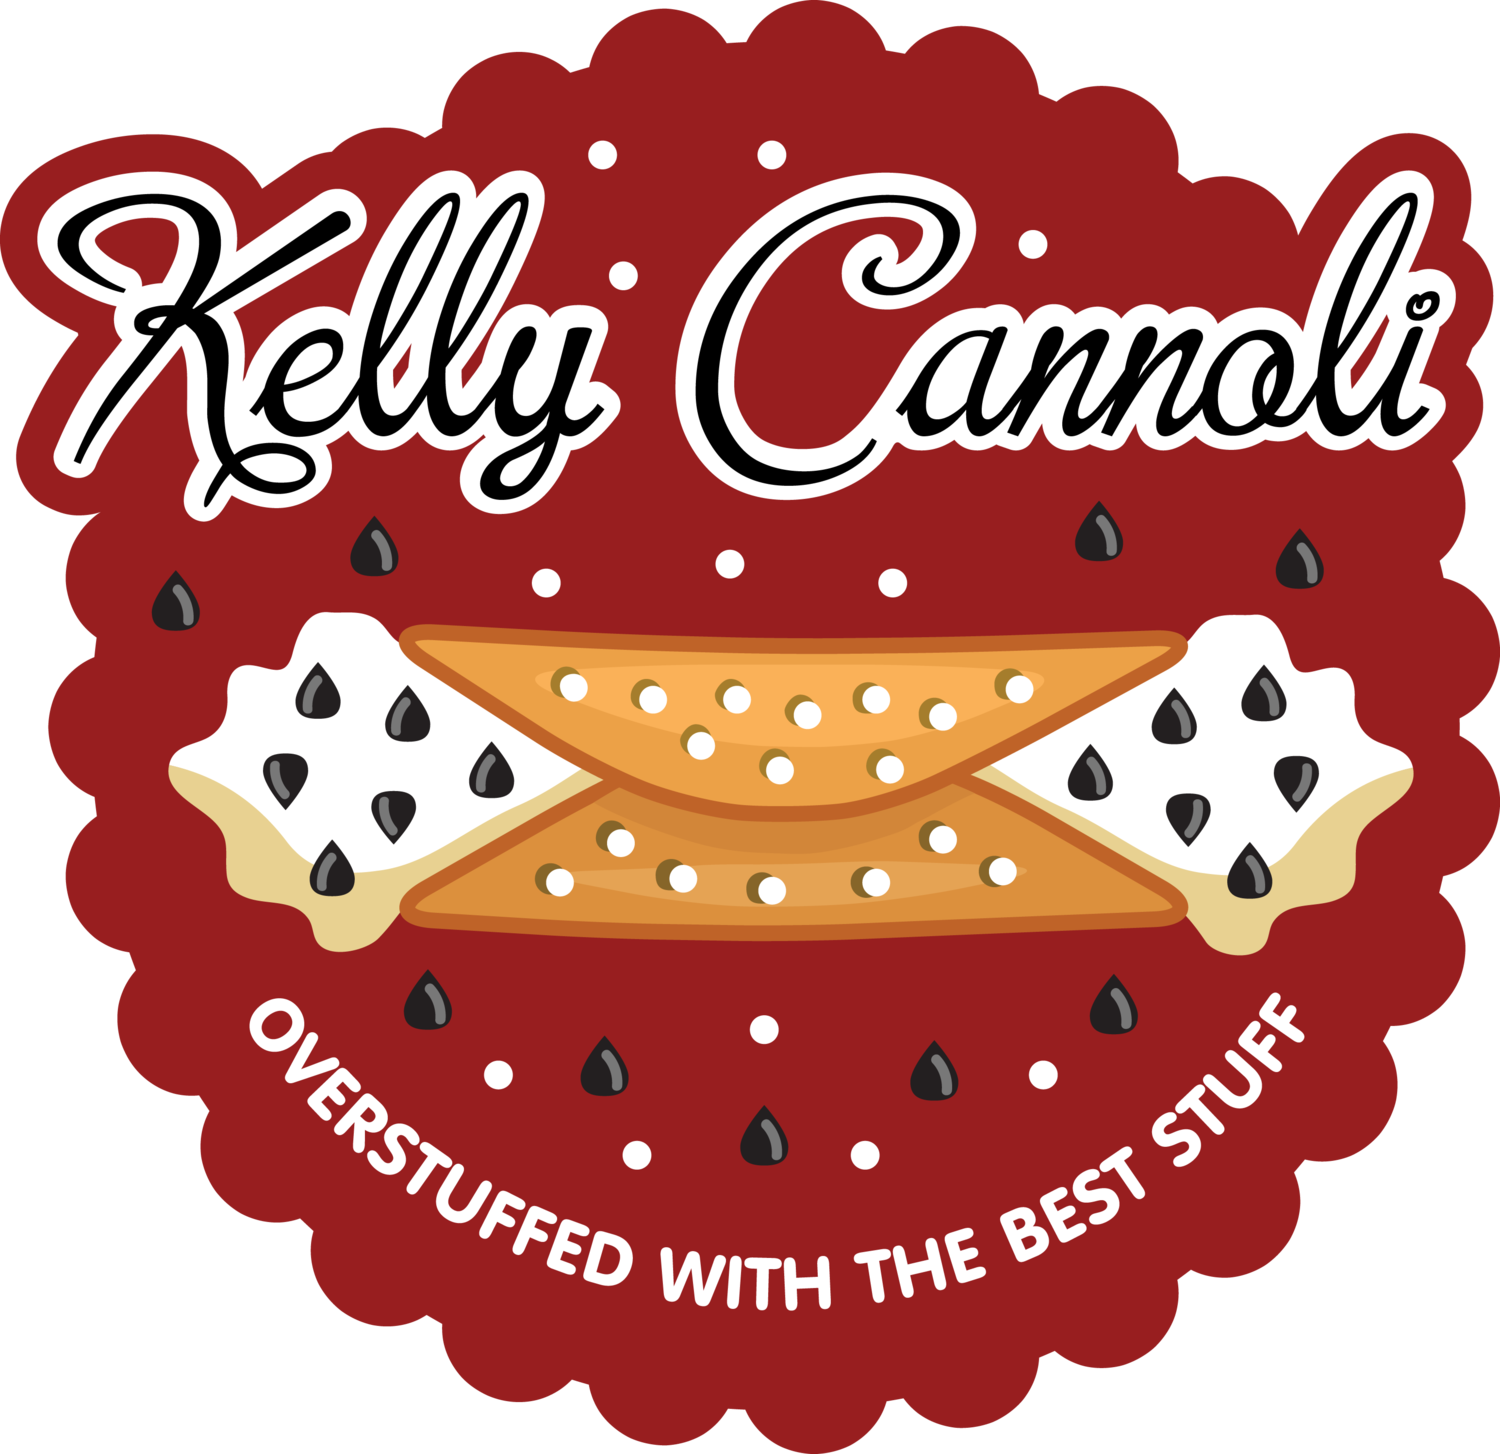 Kelly Cannoli